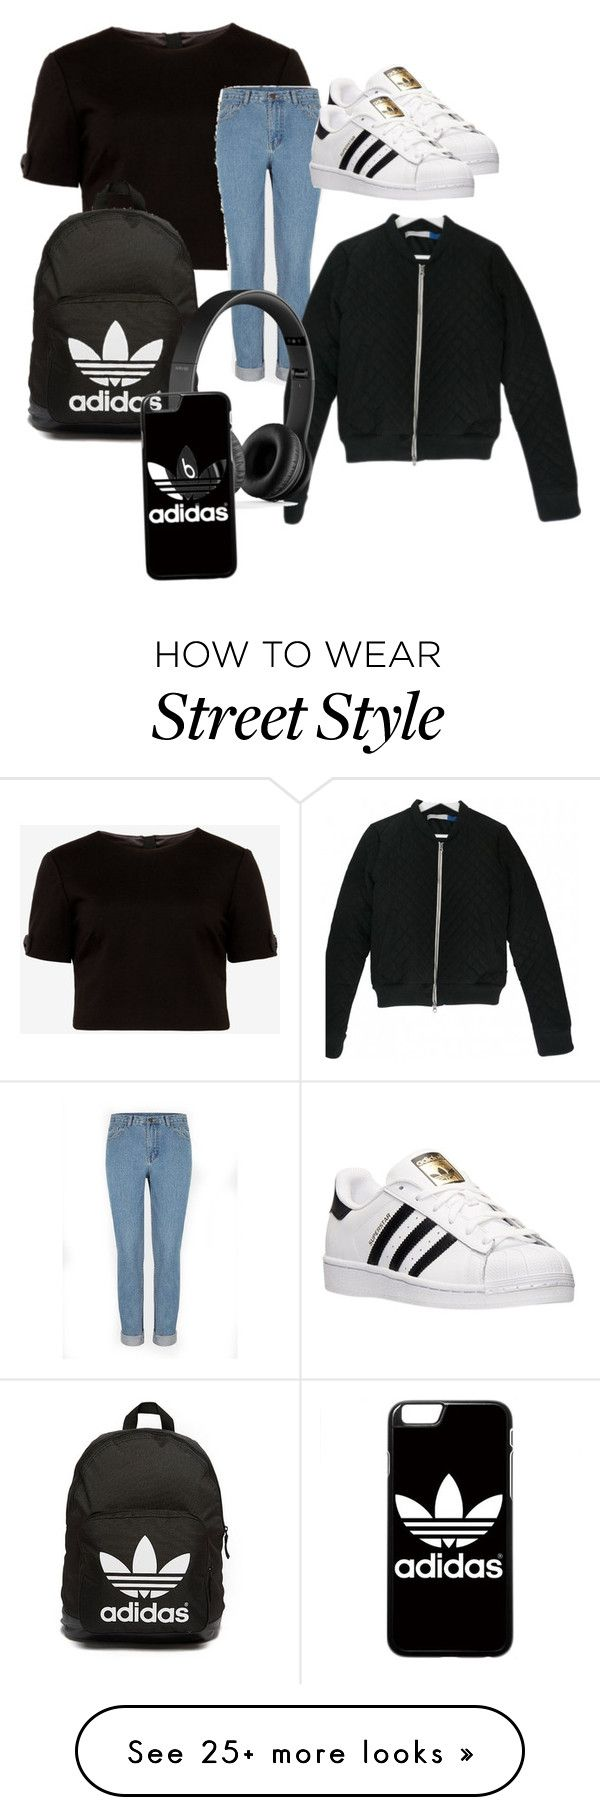 """STREET STYLE "" by floralaimee on Polyvore featuring Ted Baker, adidas, adidas Originals and Beats by Dr. Dre"